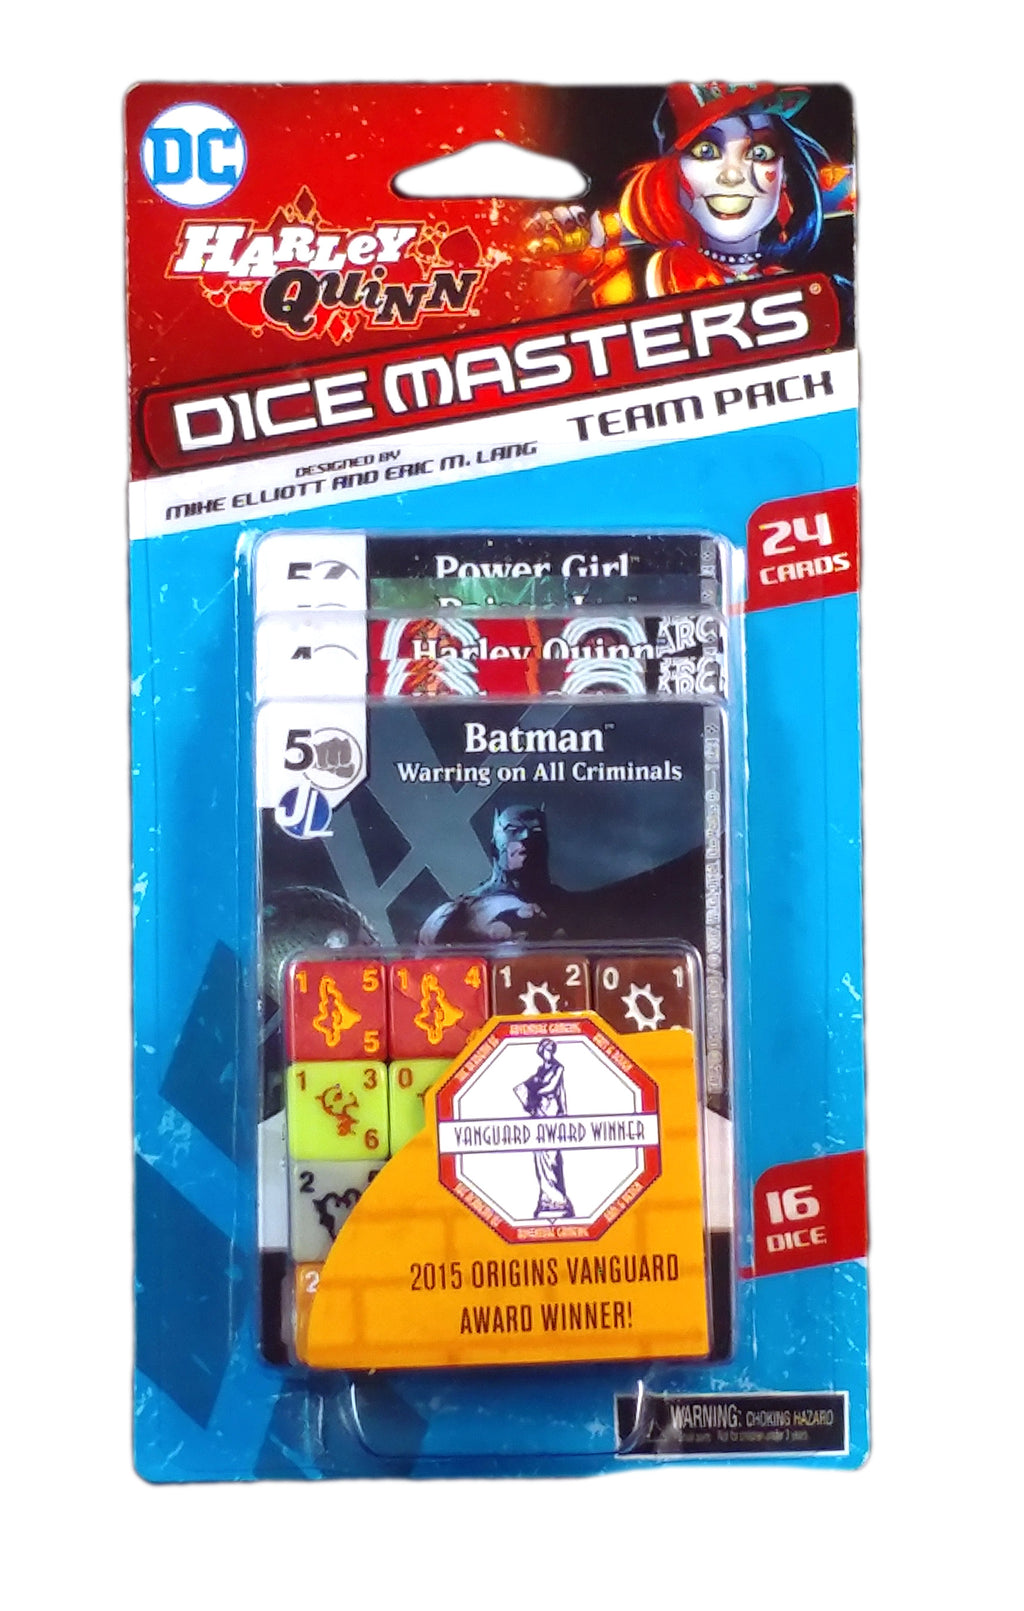 DC Dice Masters: Harley Quinn Team Pack